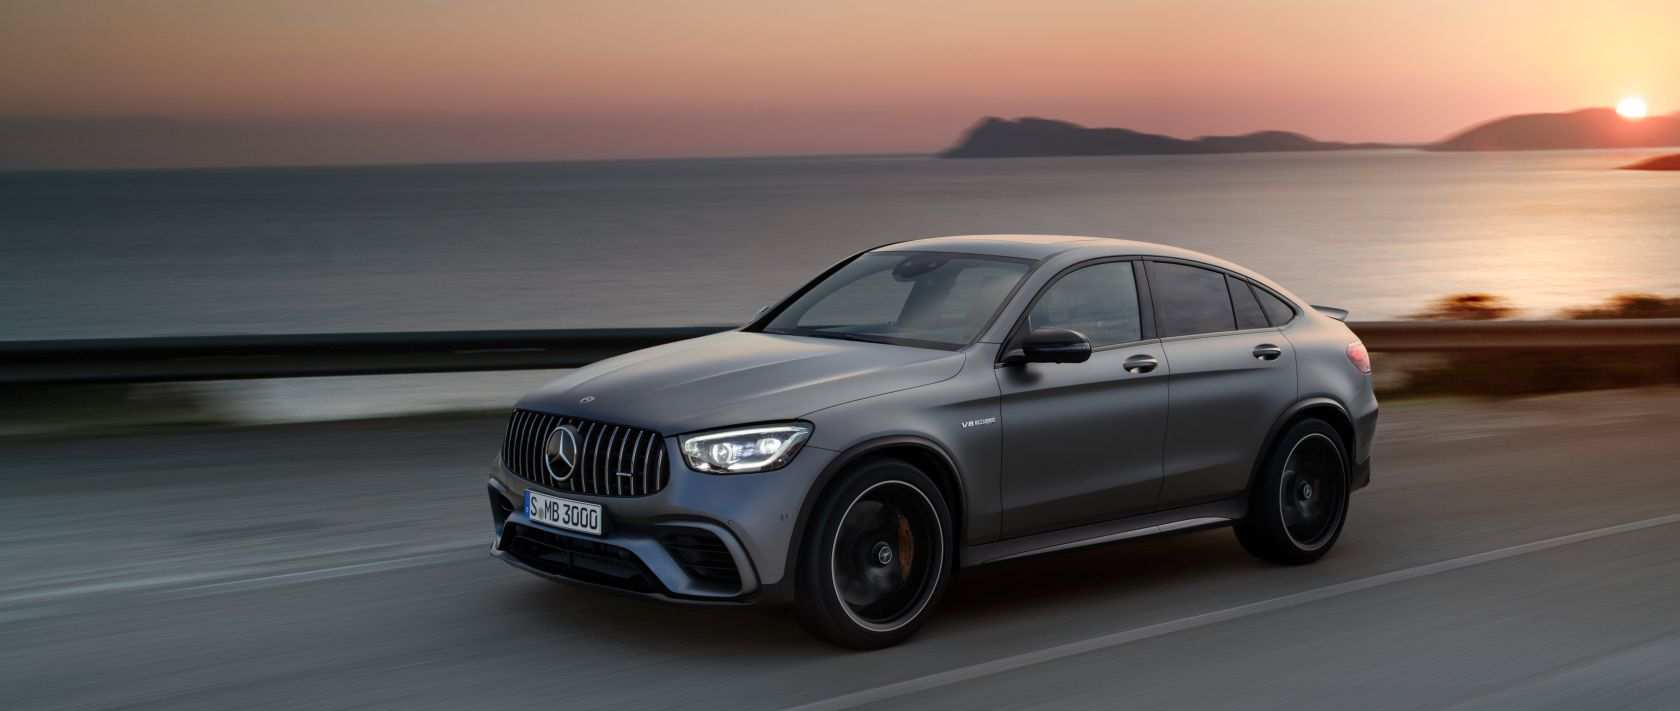 92 A Mercedes Modellen 2019 Prices